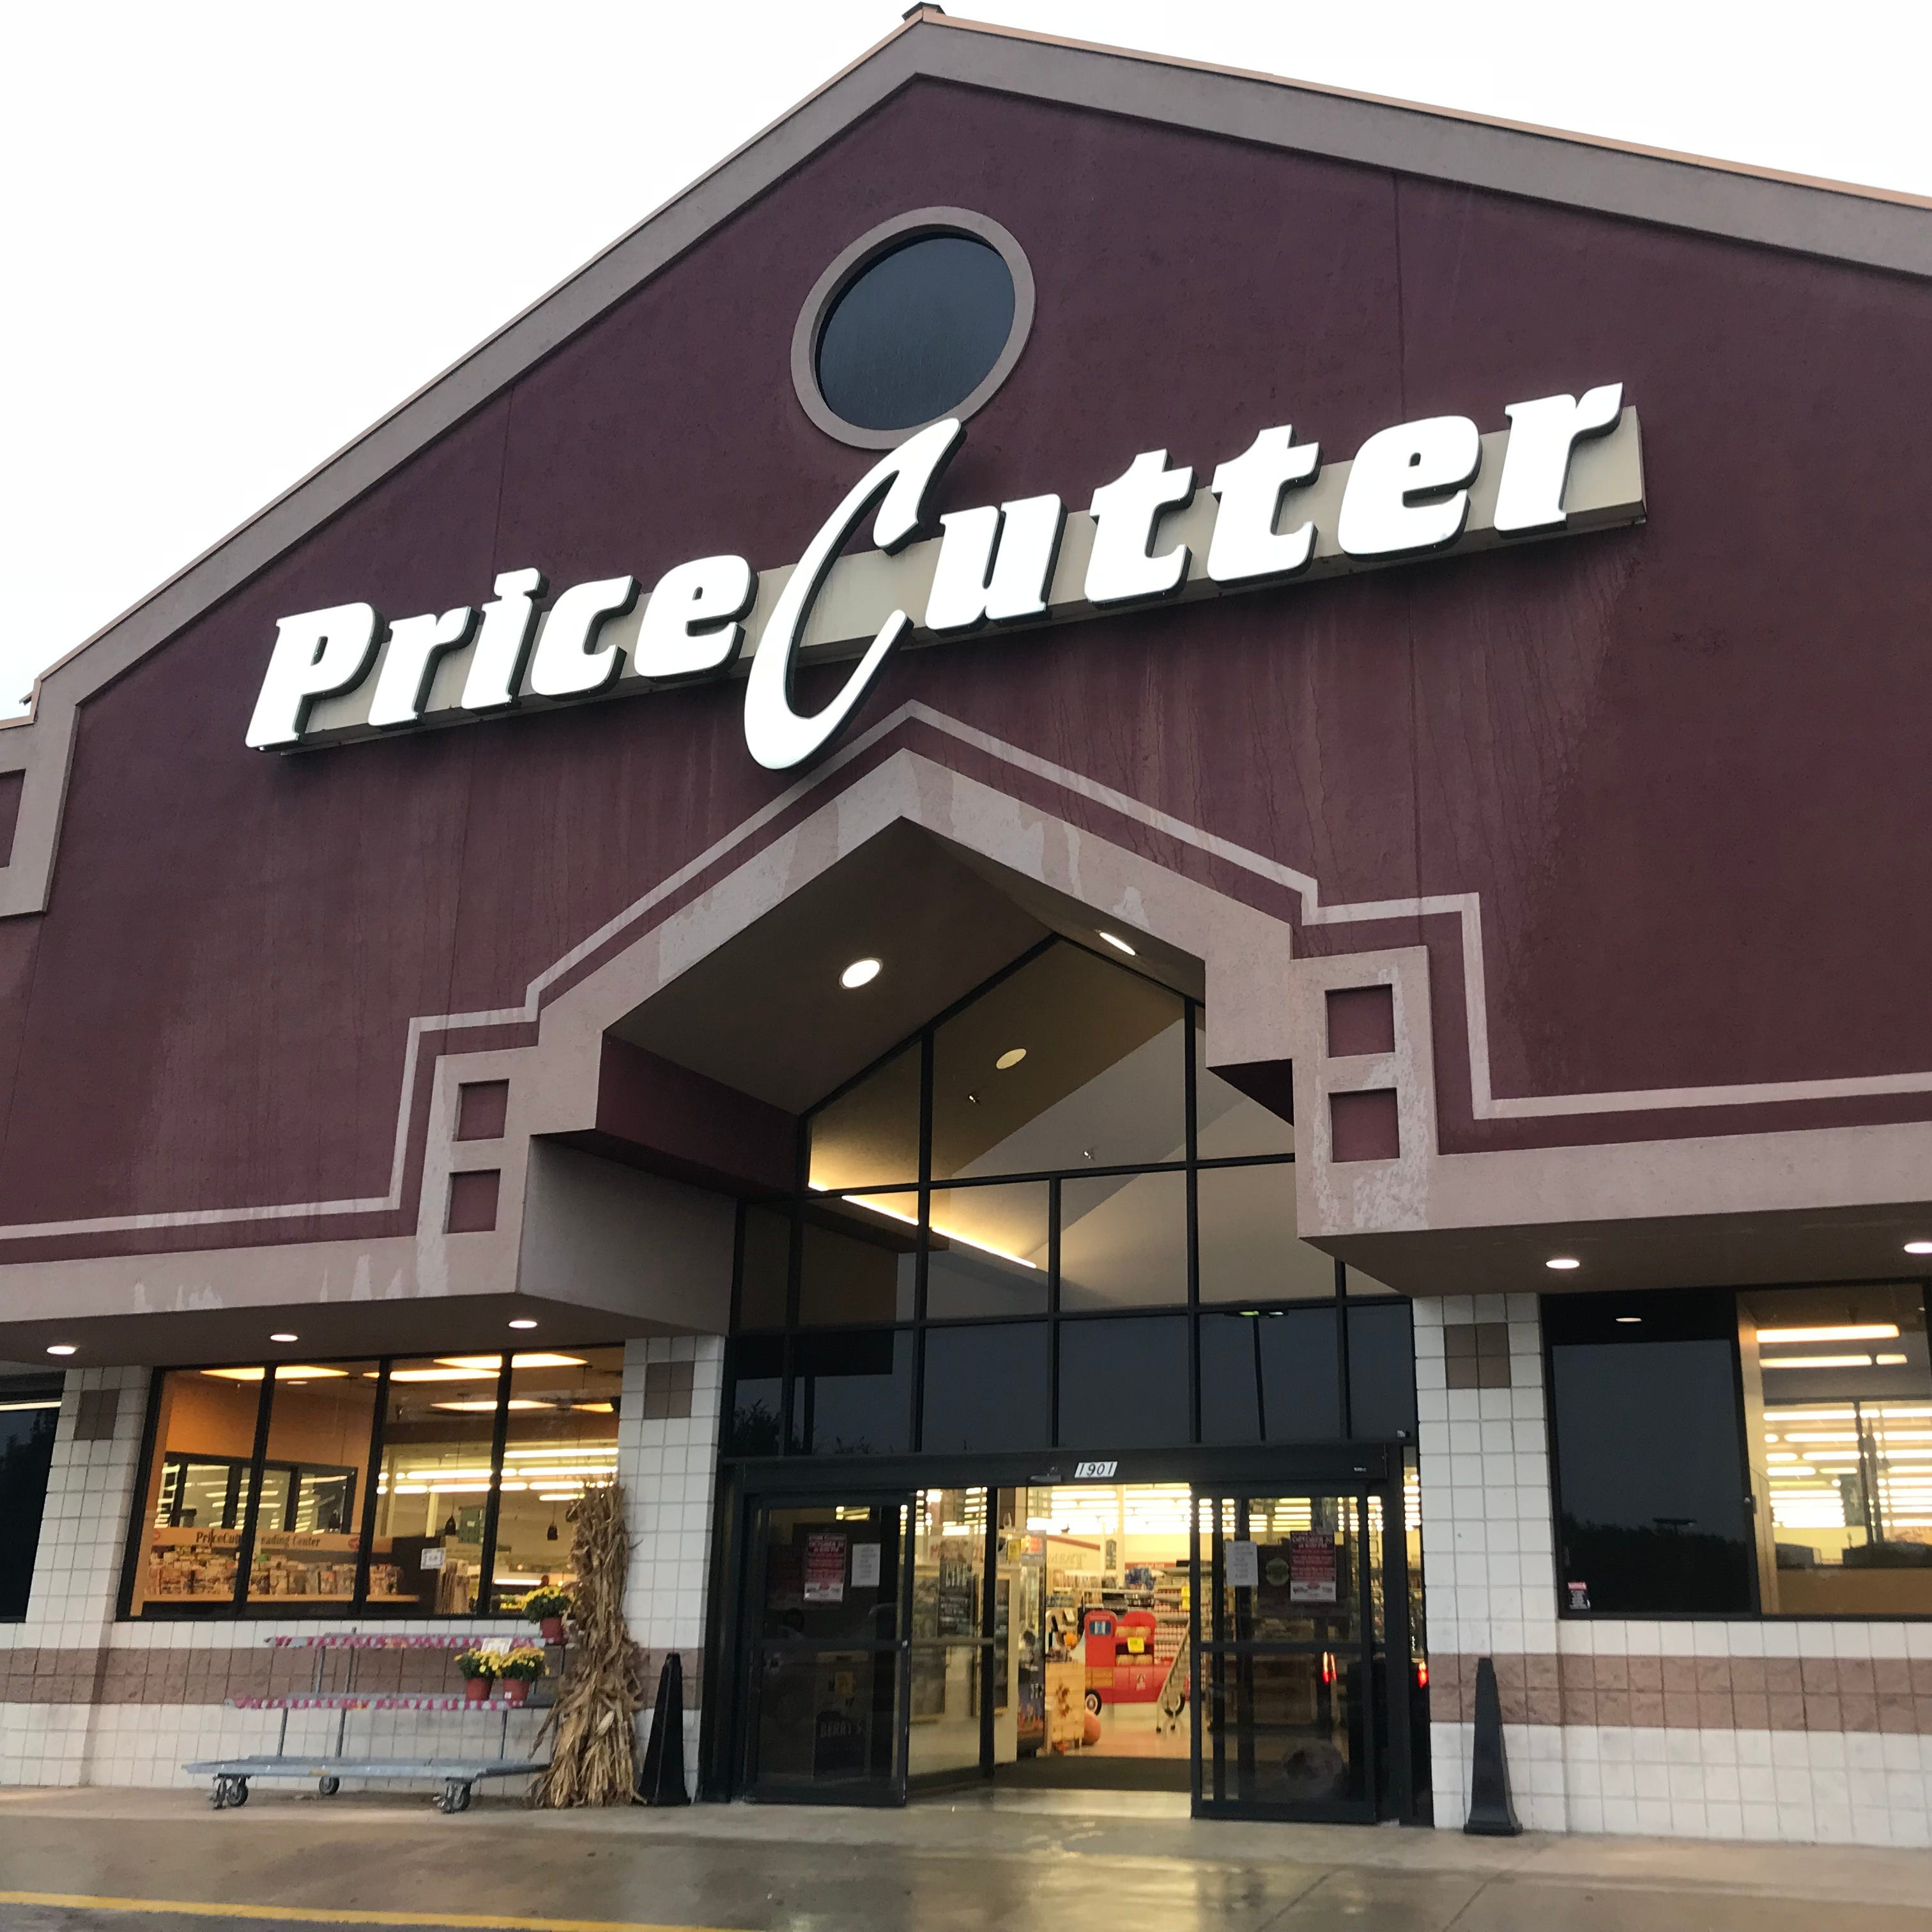 North Springfield Price Cutter to close after 23 years